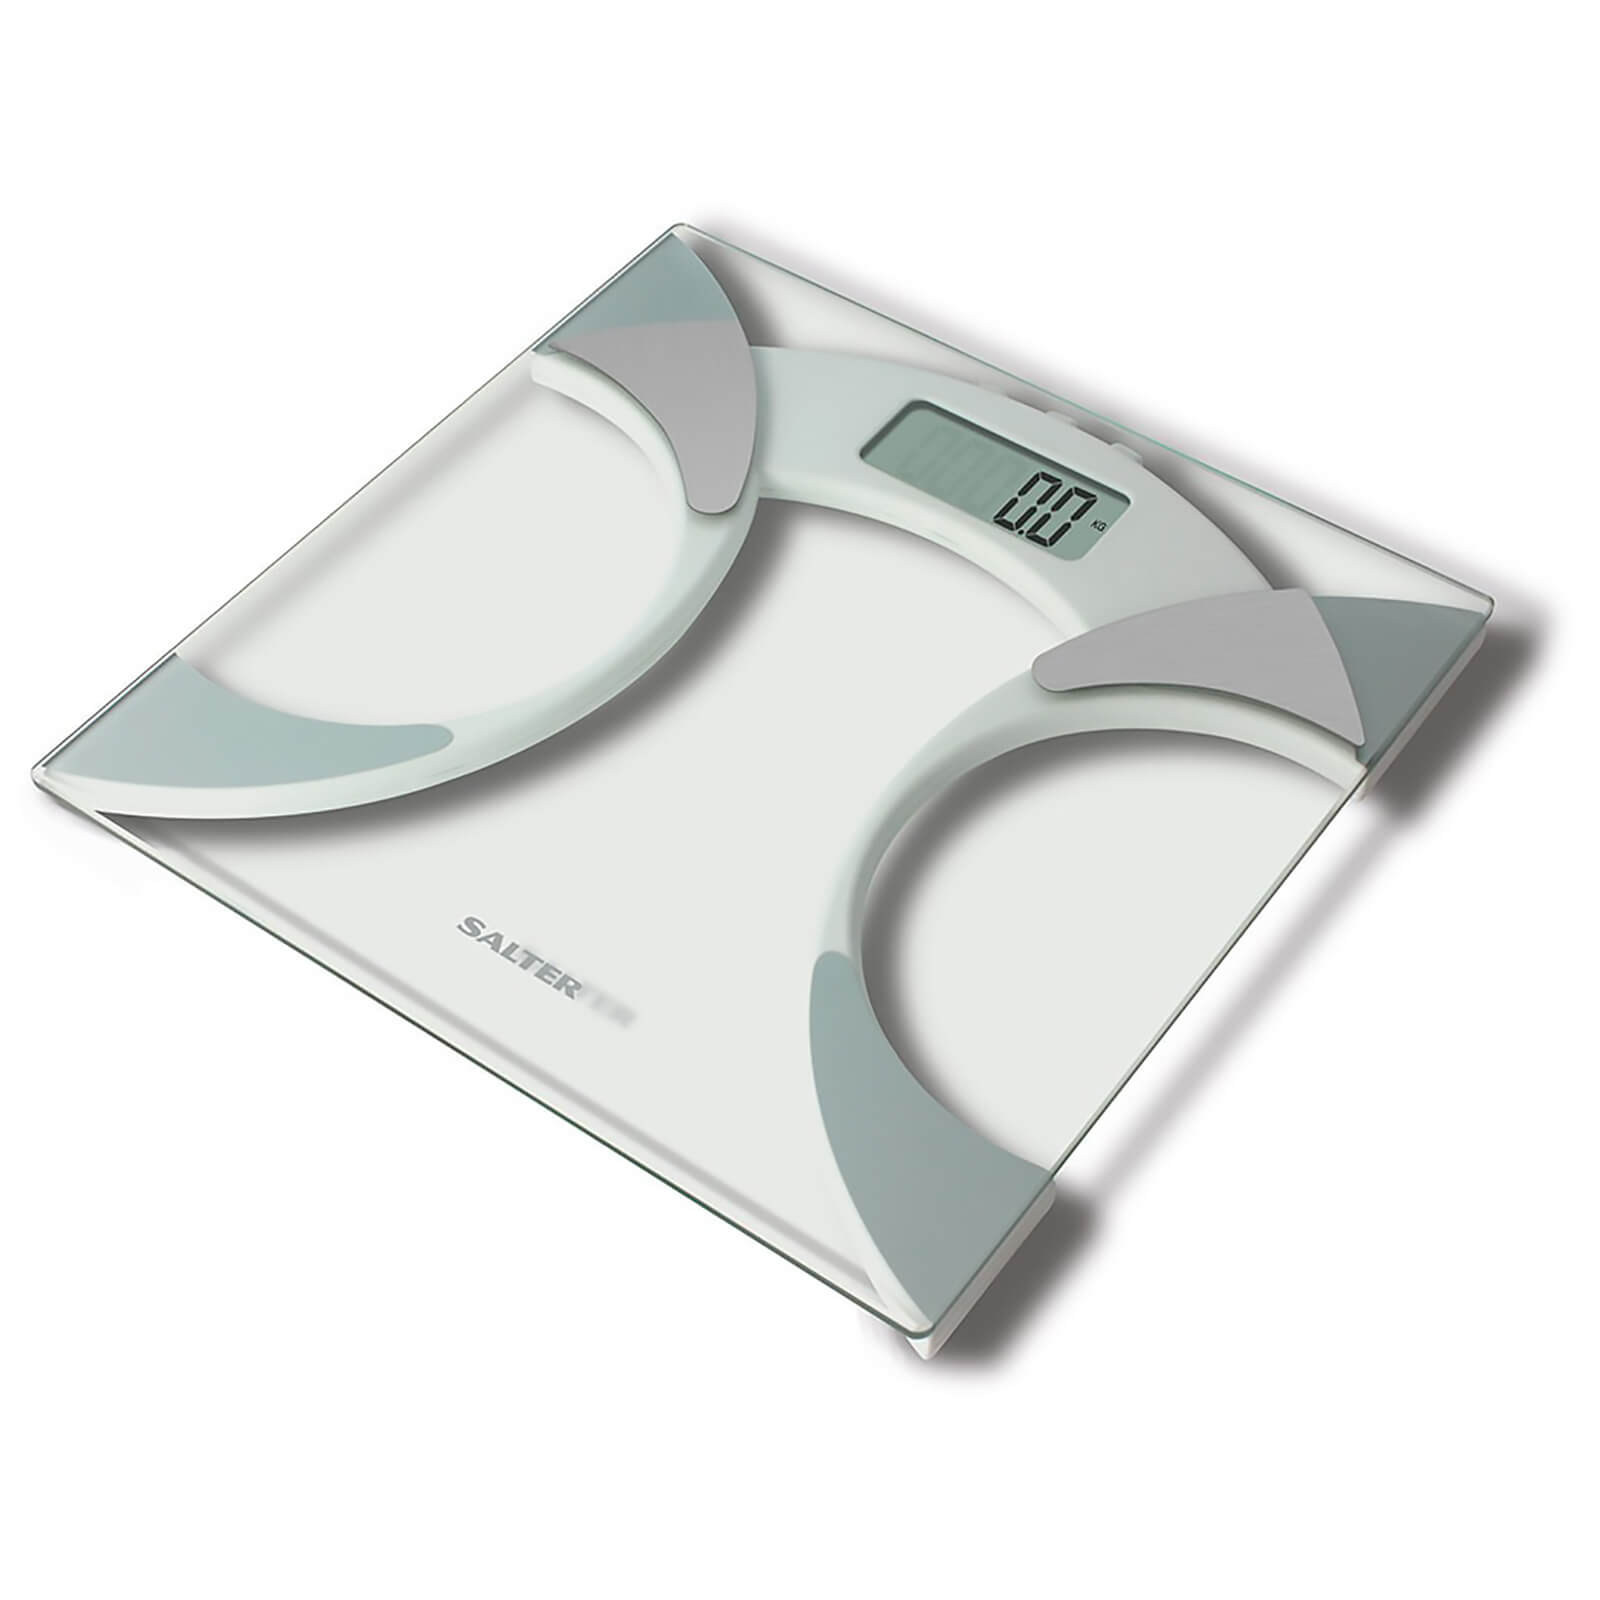 Salter Glass Analyser Scale - White